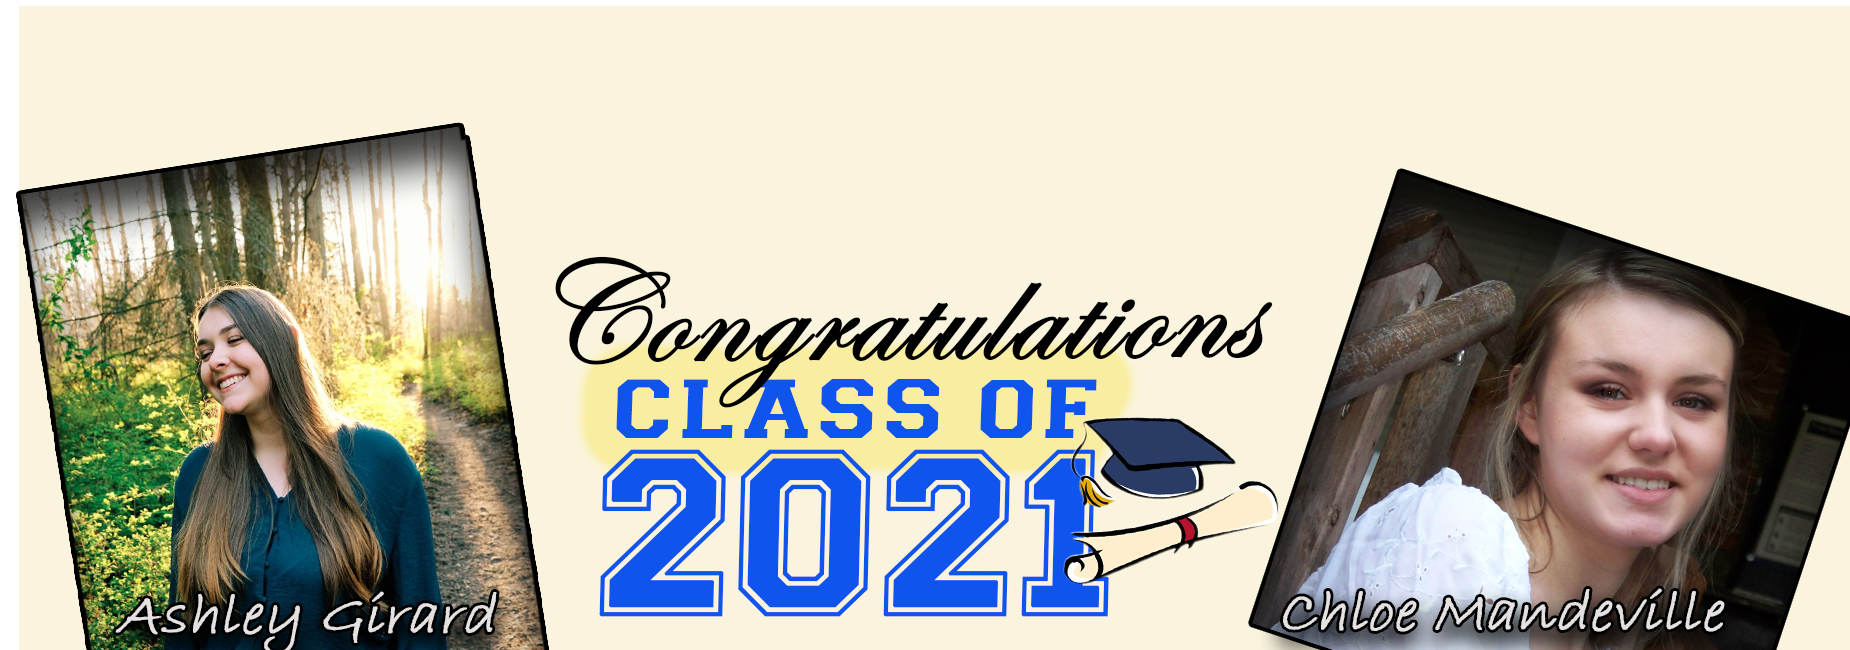 Class of 2021: A.Girard and C.Mandeville